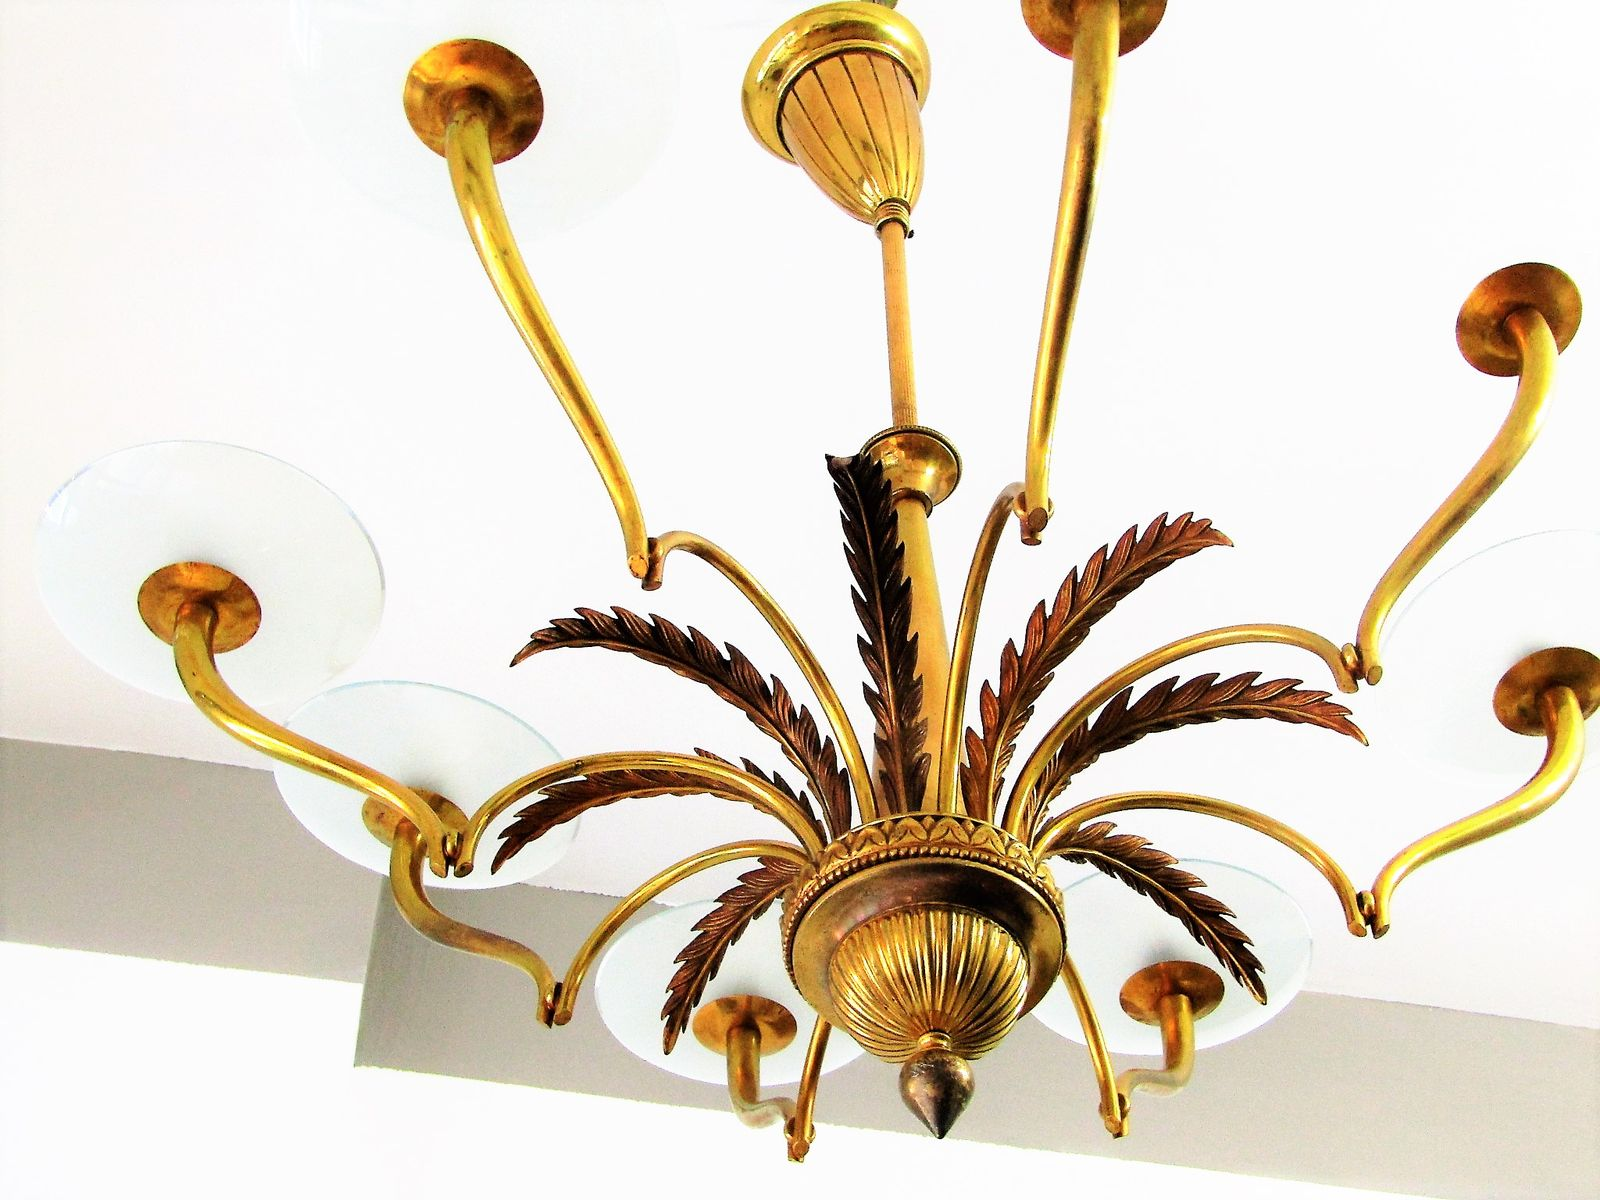 Italian glass disks chandelier 1930s for sale at pamono a1112300 mozeypictures Gallery